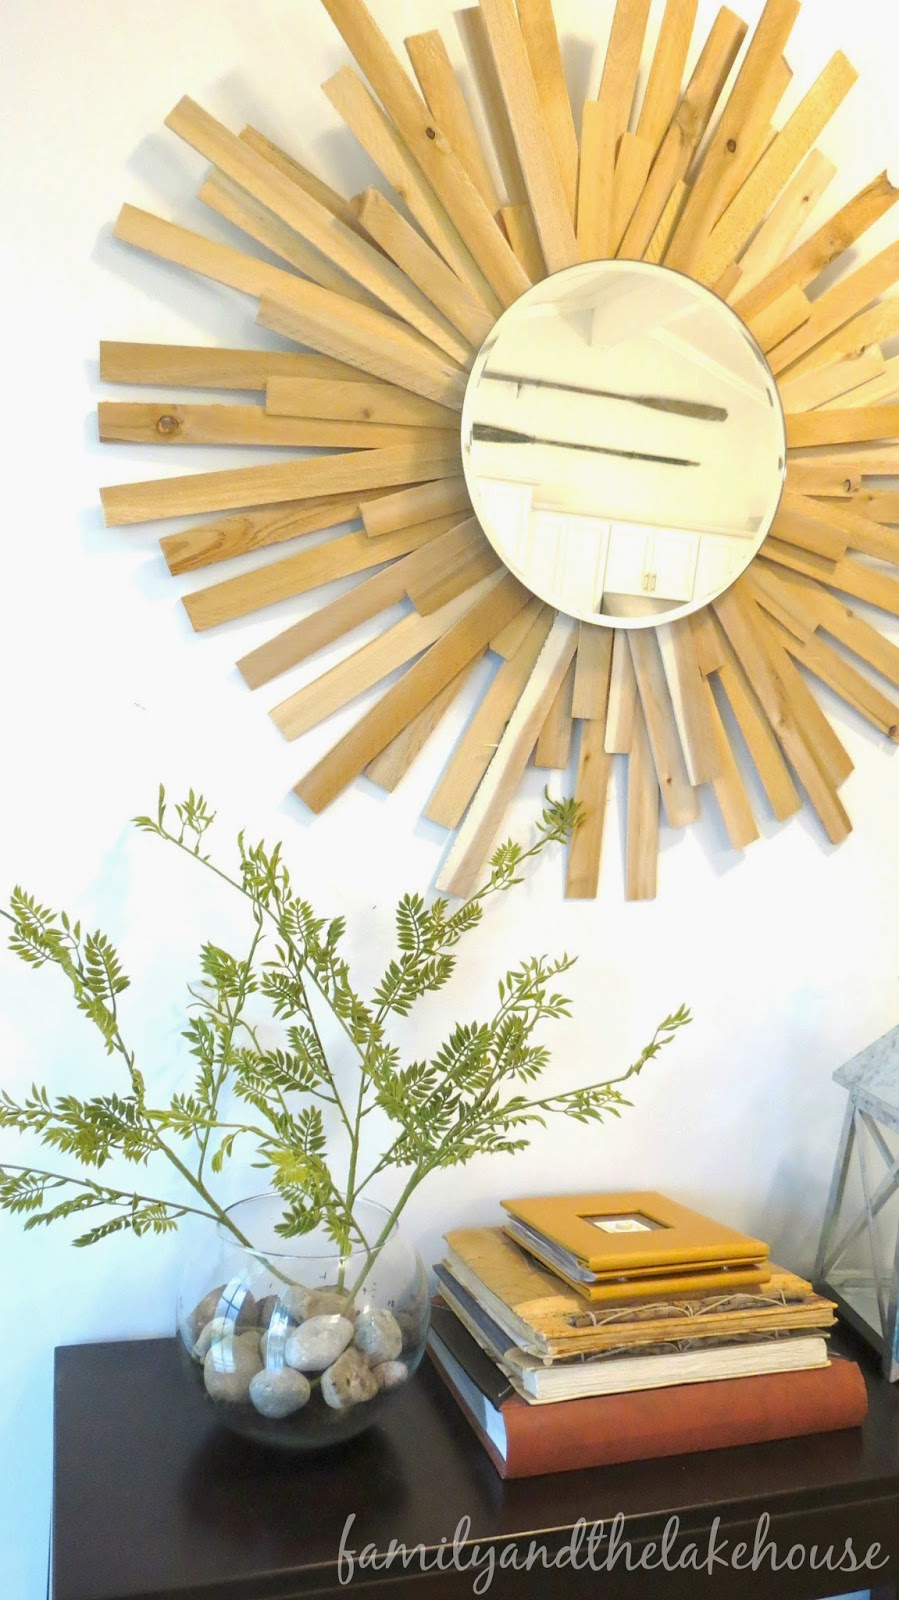 Family and the Lake House - Cedar Shim Sunburst Mirror